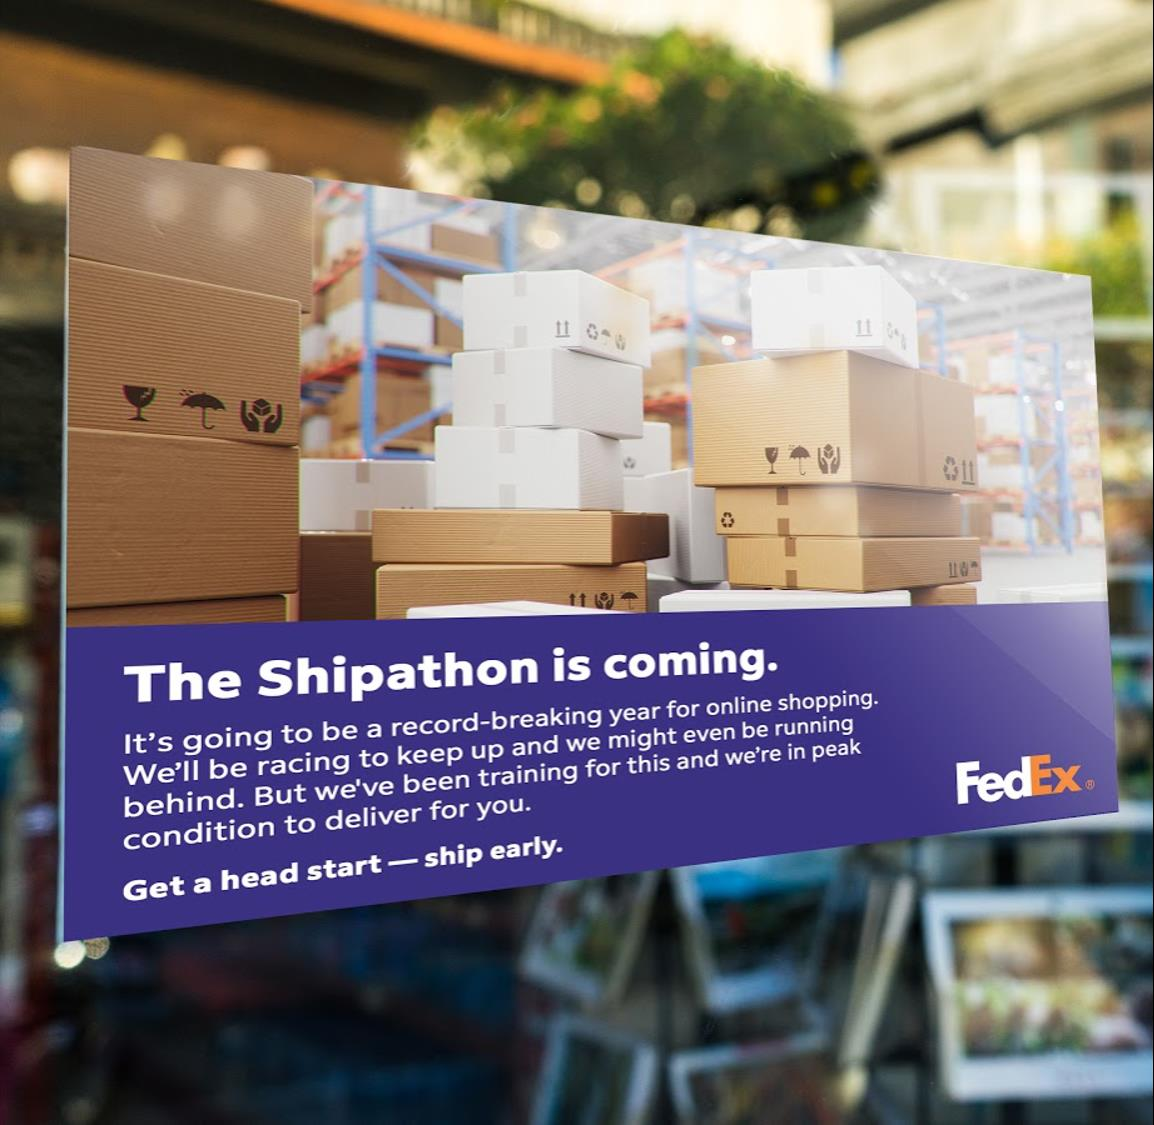 FedEx - Shipathon